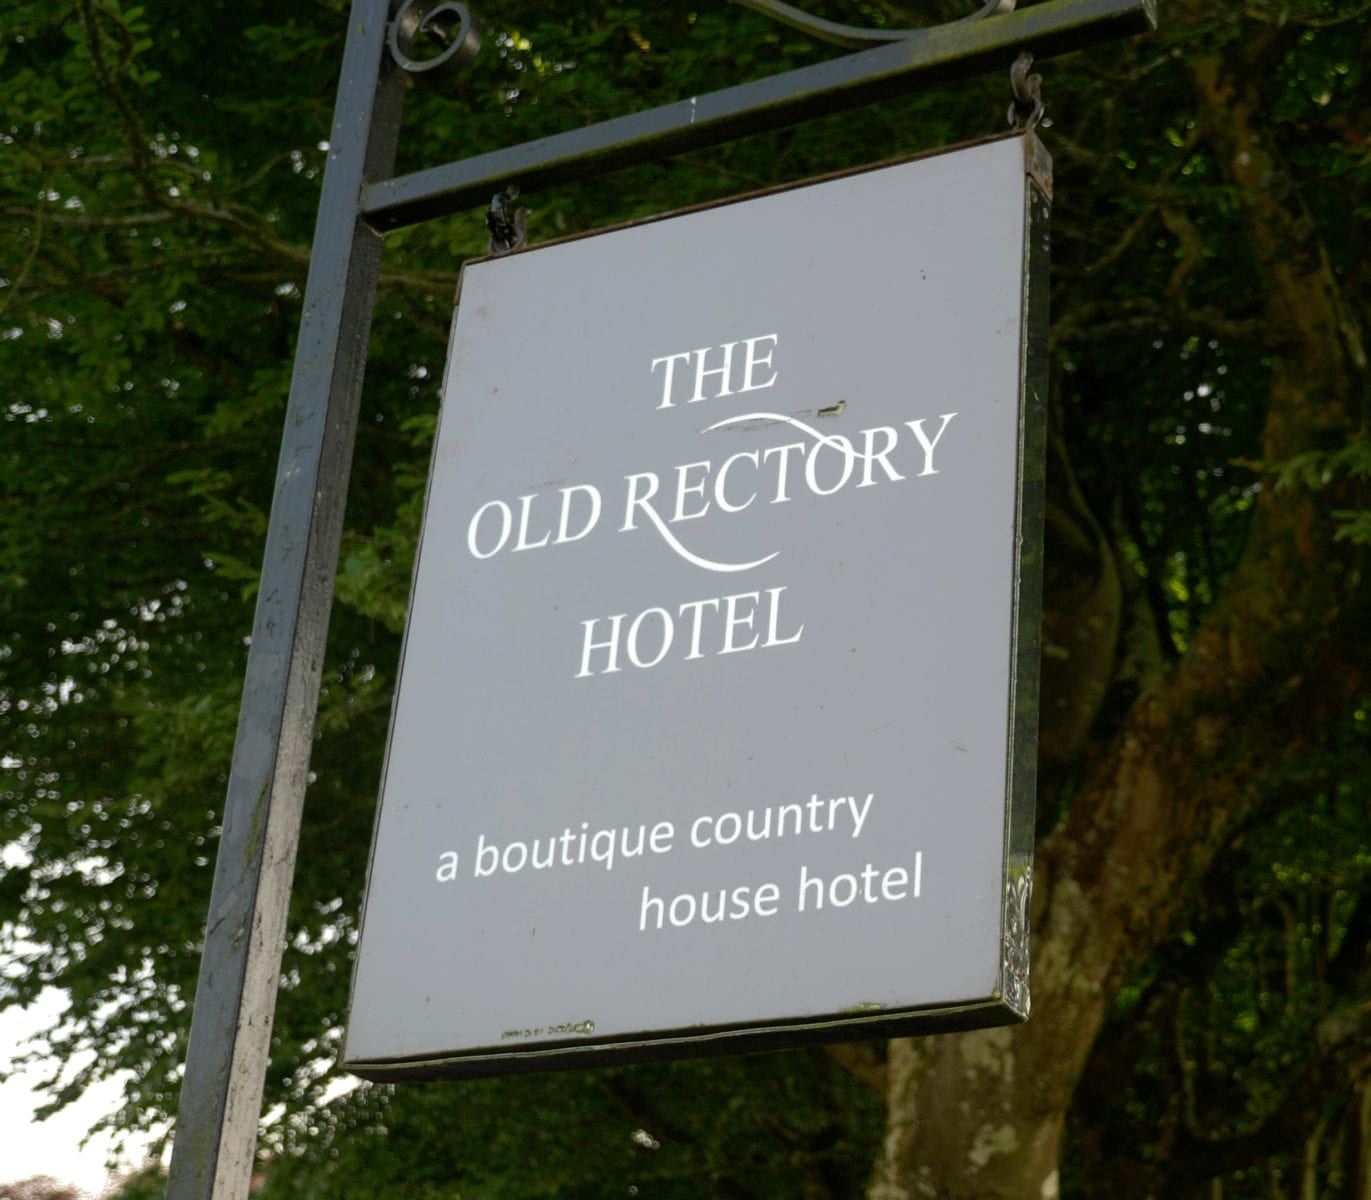 a picture of the old rectory hotel sign outside